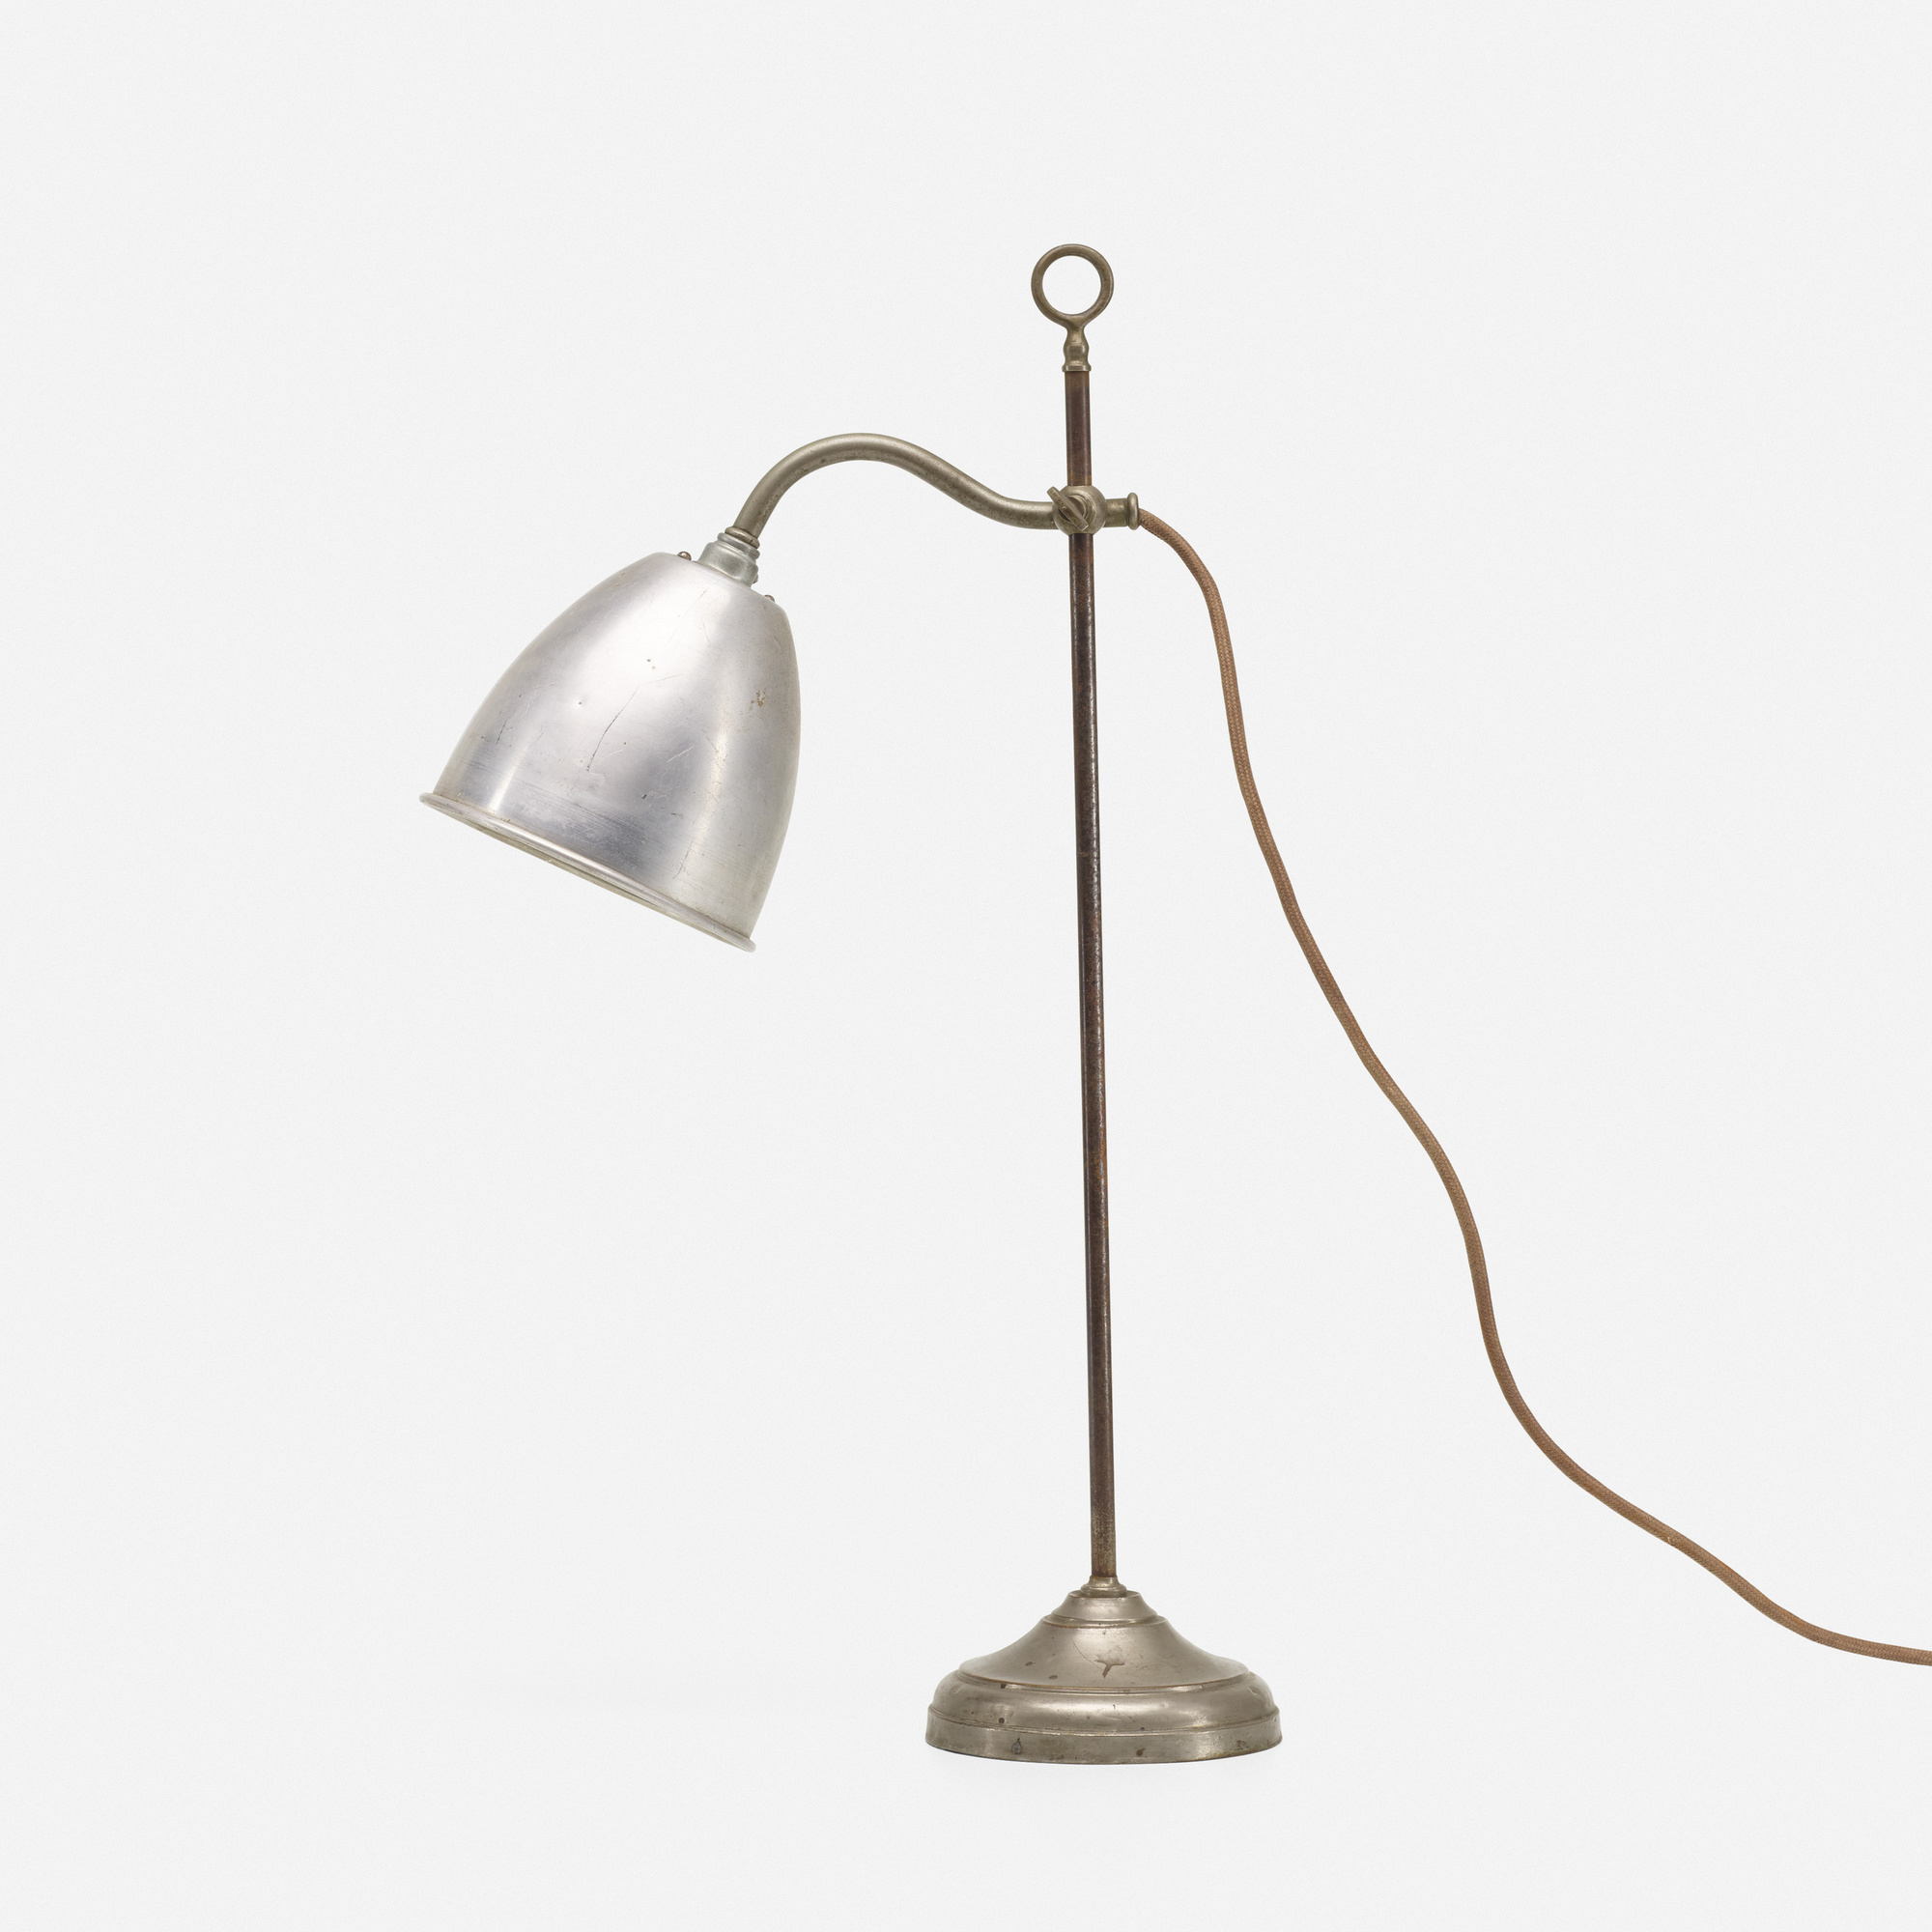 136: Early 20th Century / table lamp (1 of 3)